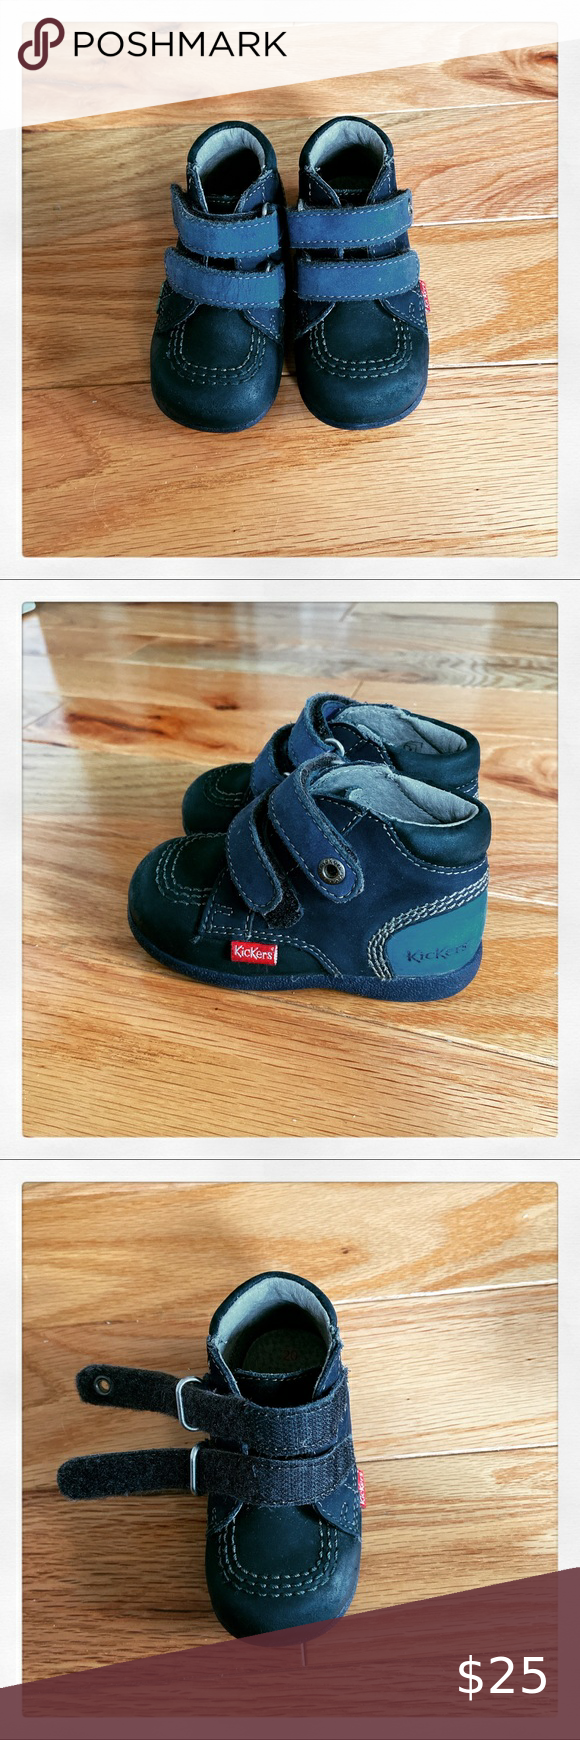 KICKERS Babyscratch first steps shoes